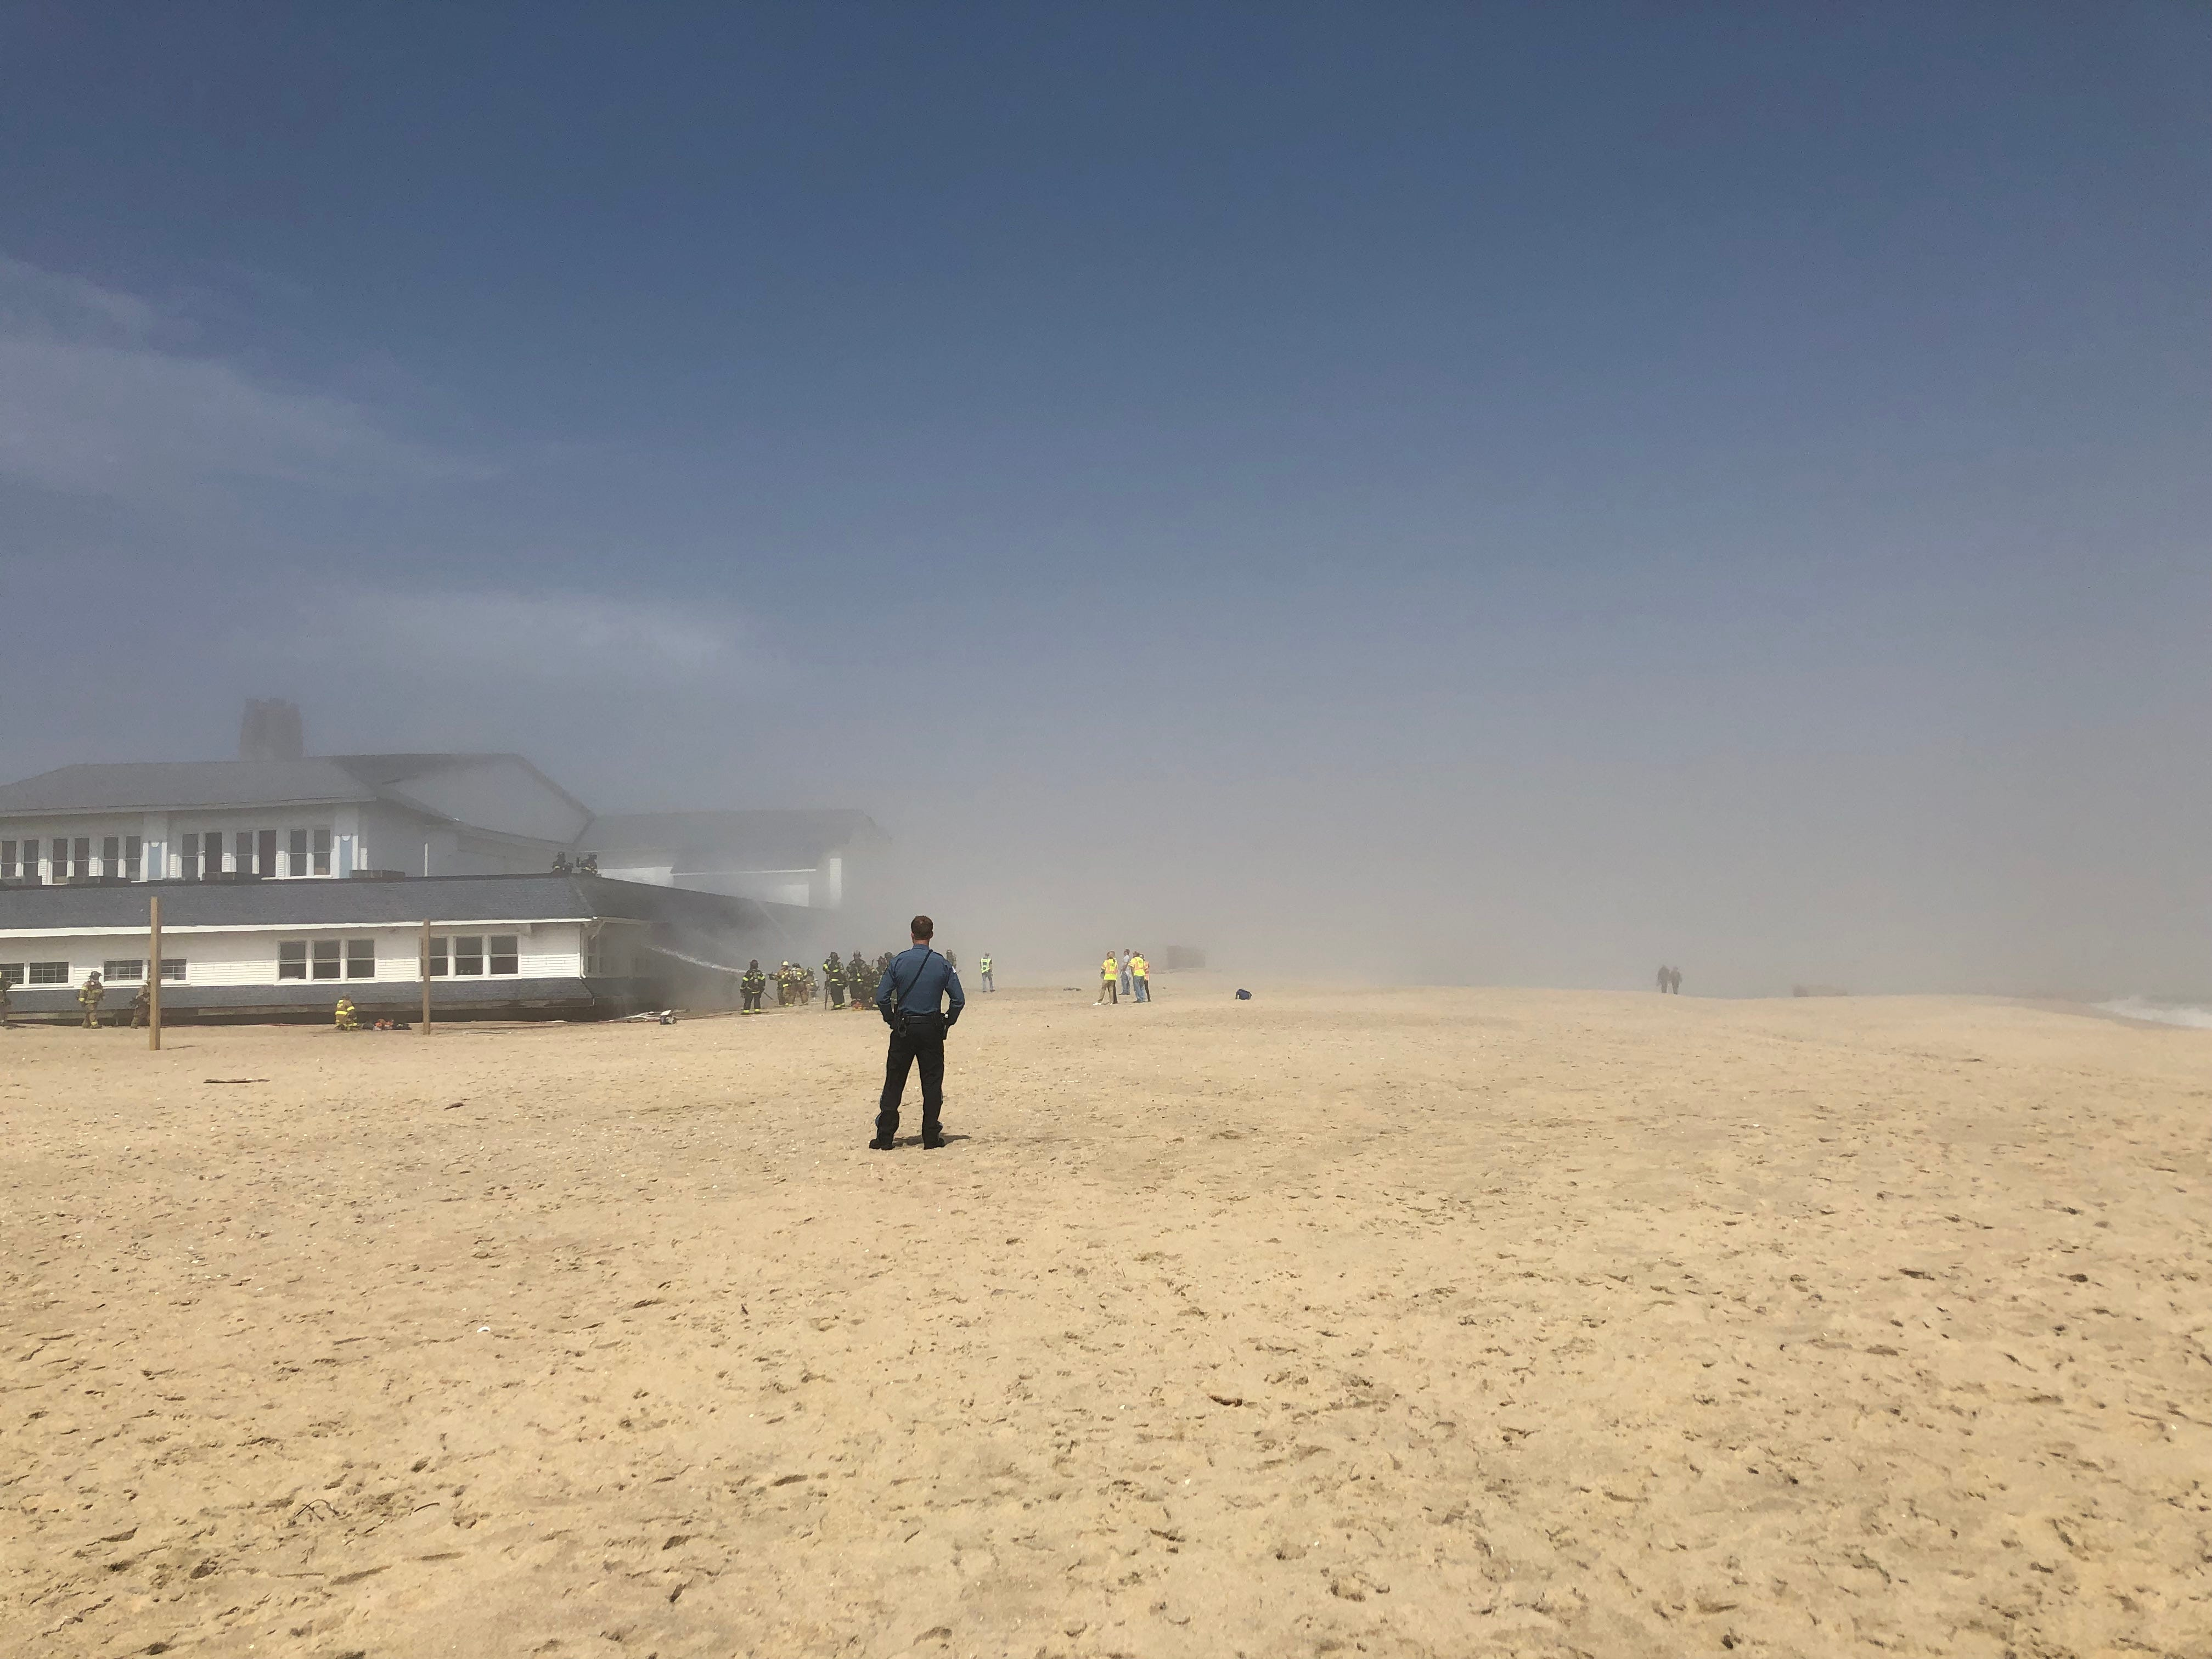 Haze from the fire clouded the beach